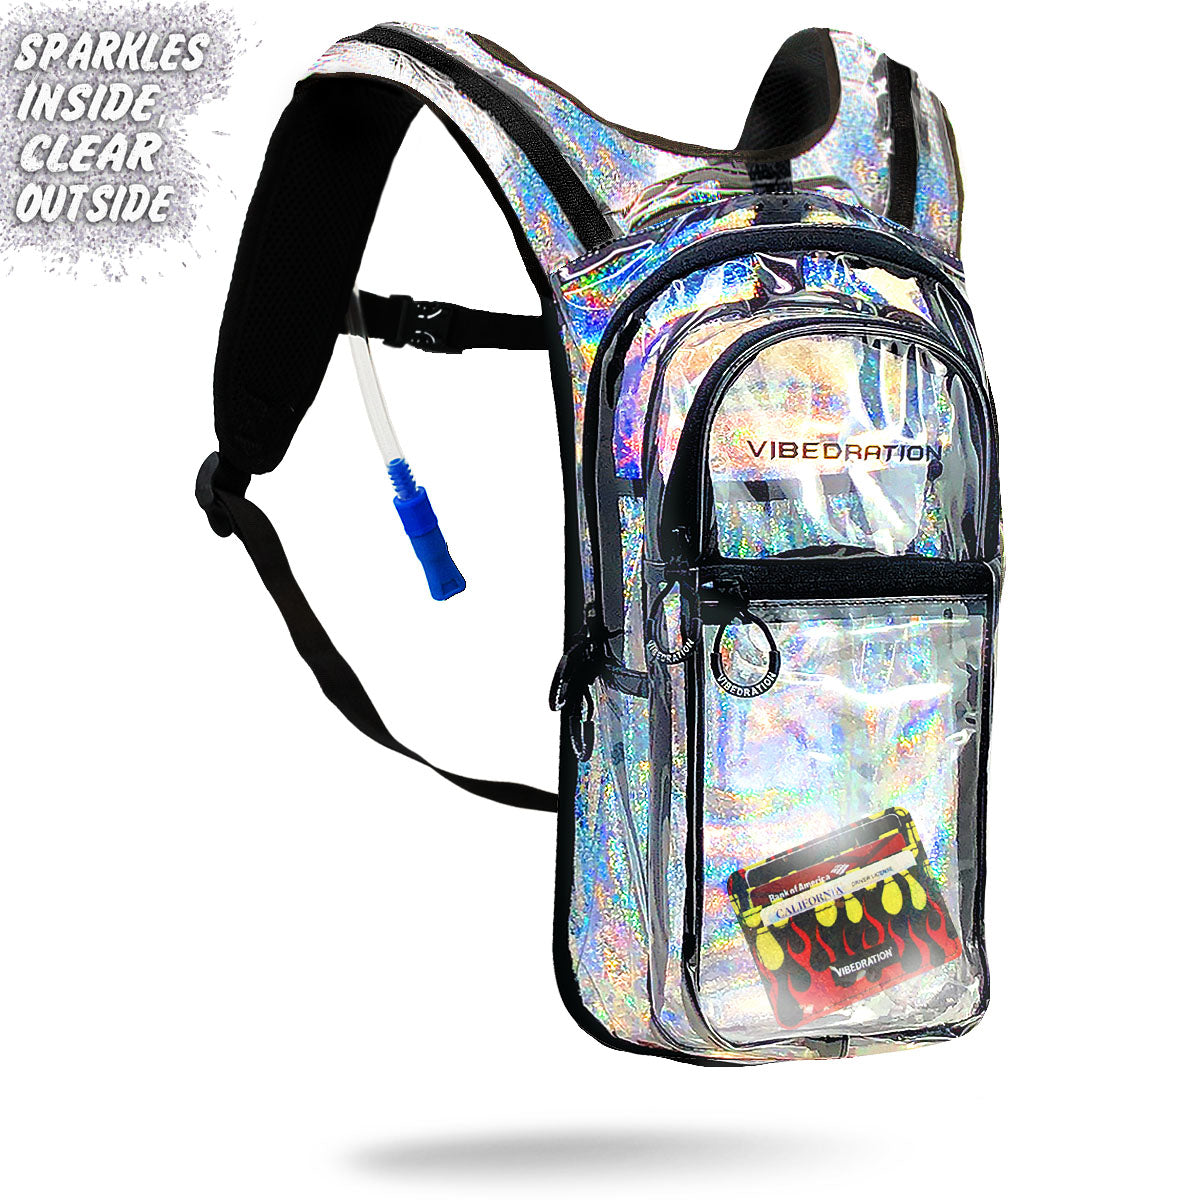 Clear Sliver Sparkles Festival Hydration Pack VIP with Fire Card Holder inside